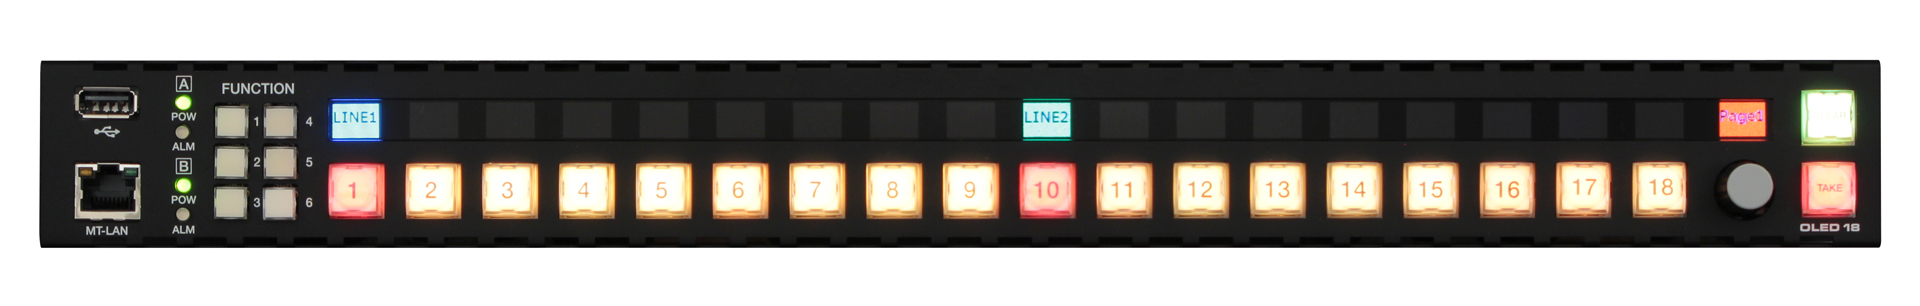 OLED18_front_1920